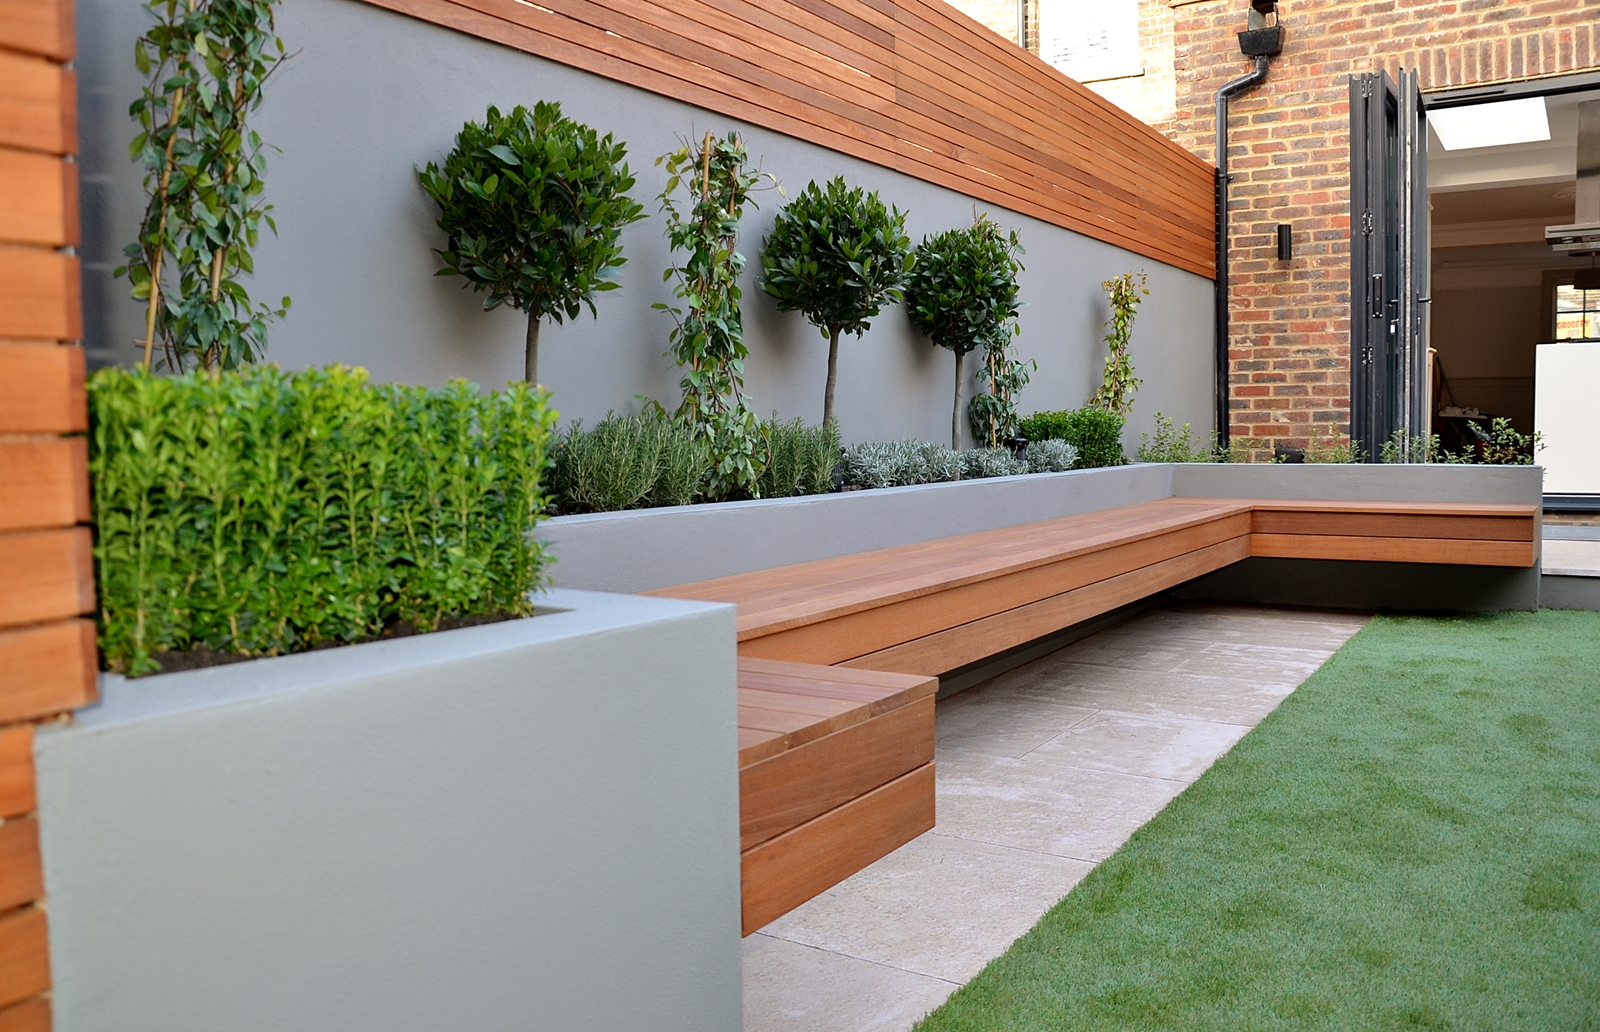 Modern garden design and designer london for Garden design plans uk